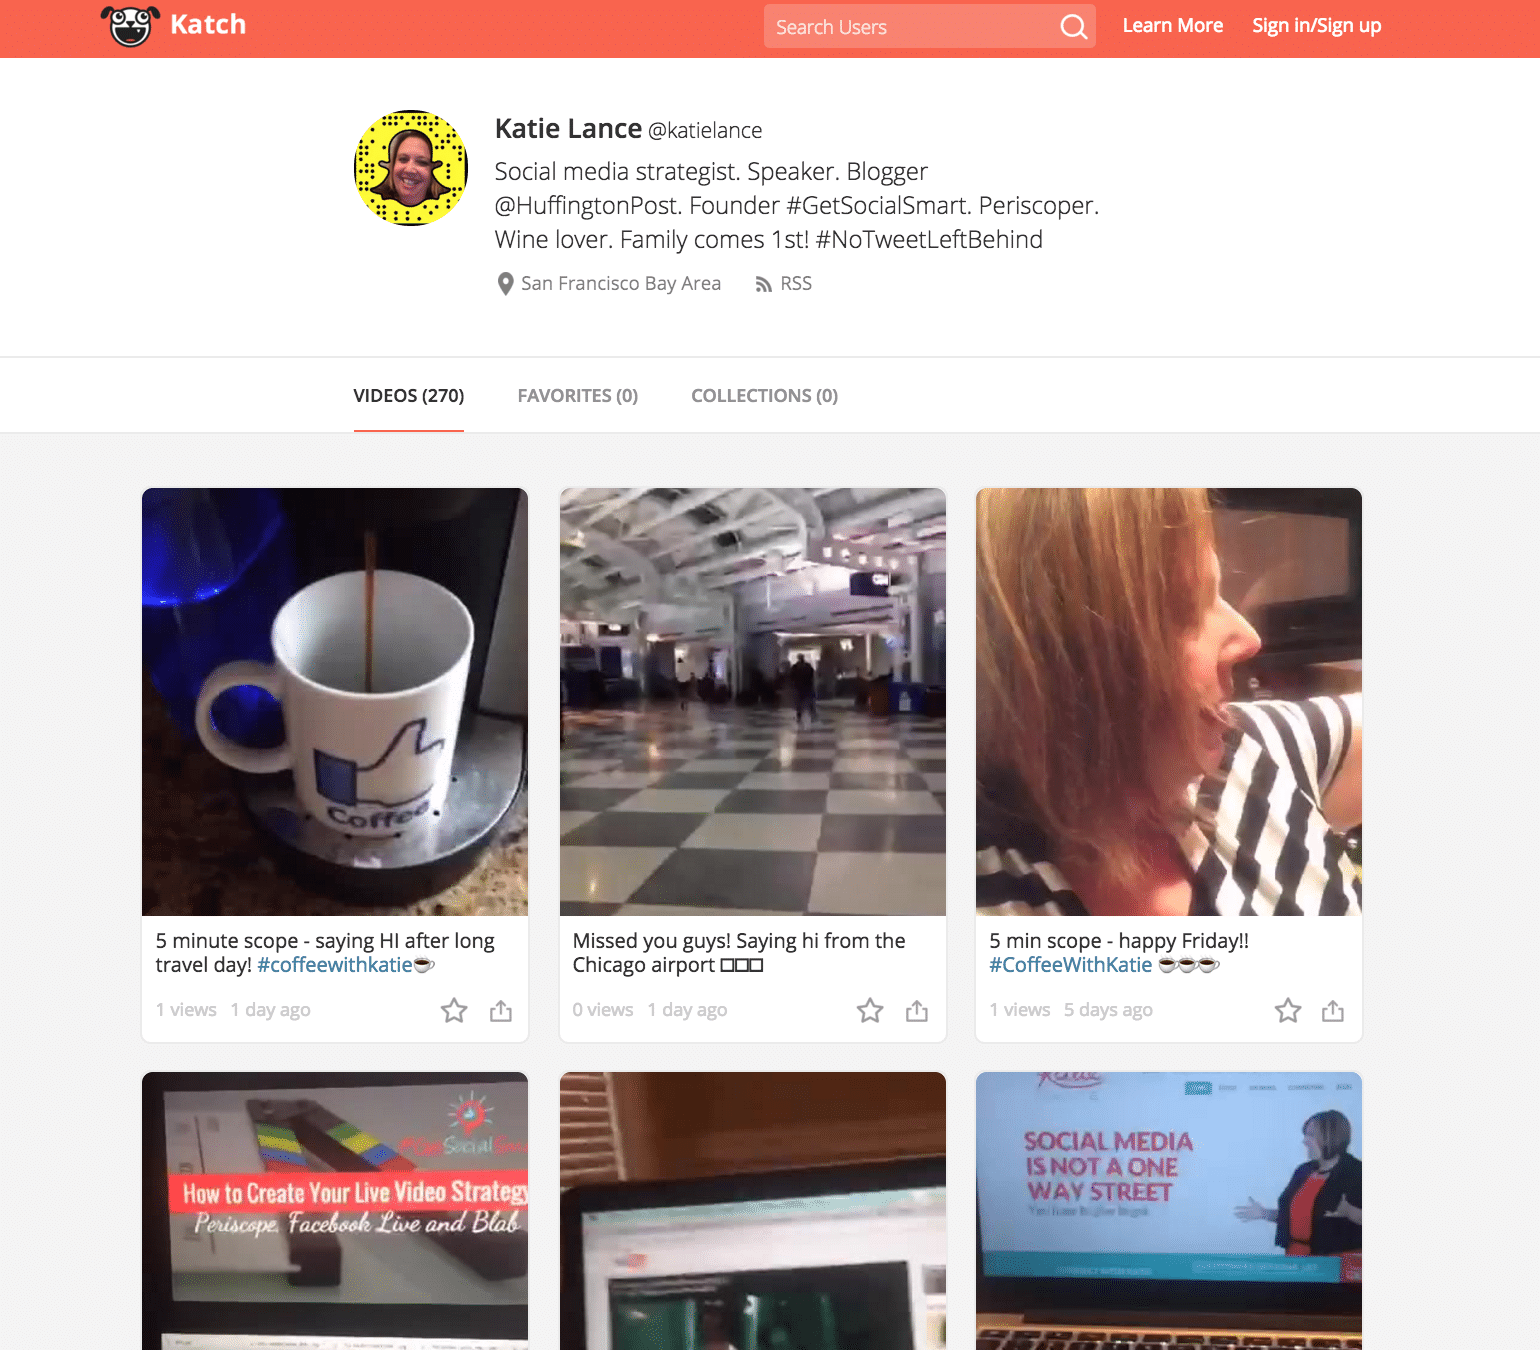 Katch.me is a great tool for saving and repurposing your Periscope broadcasts.